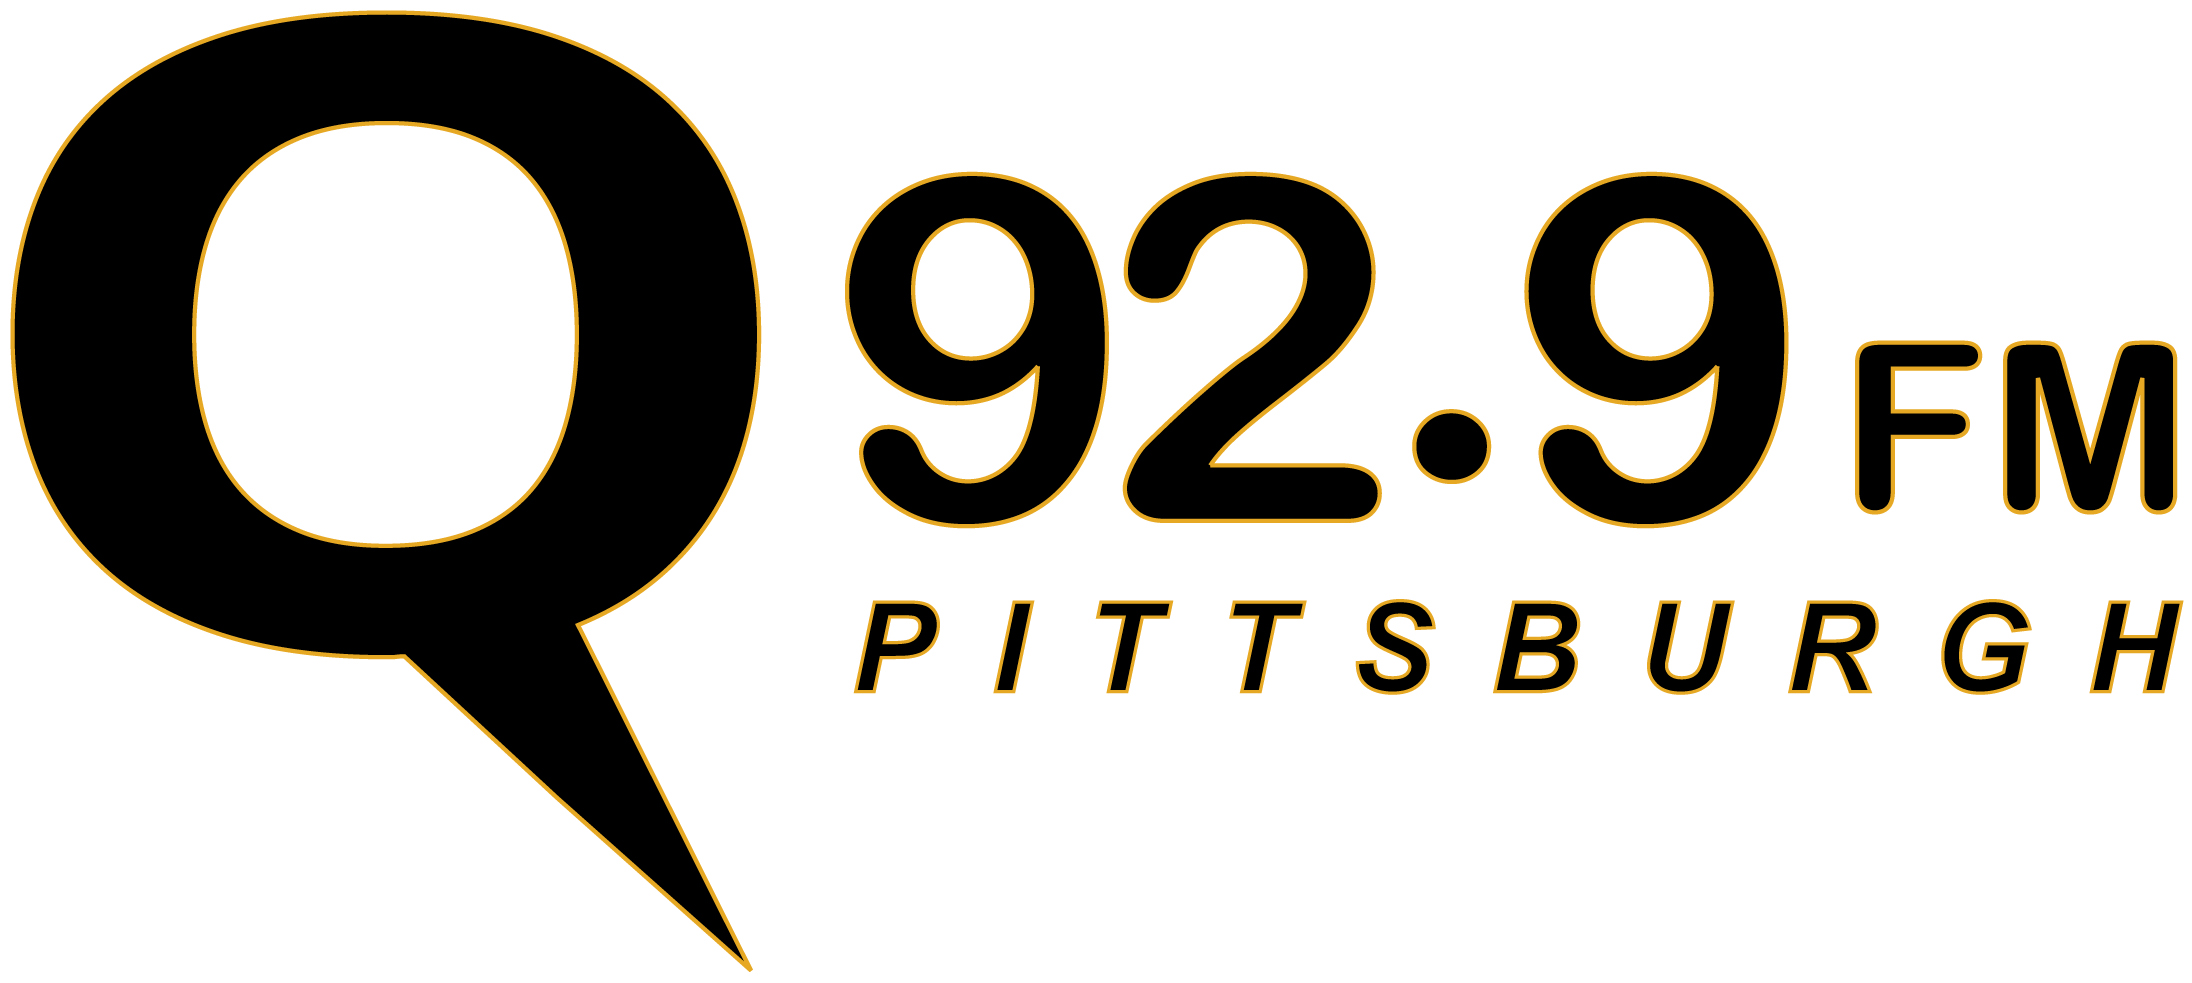 q929 website logo